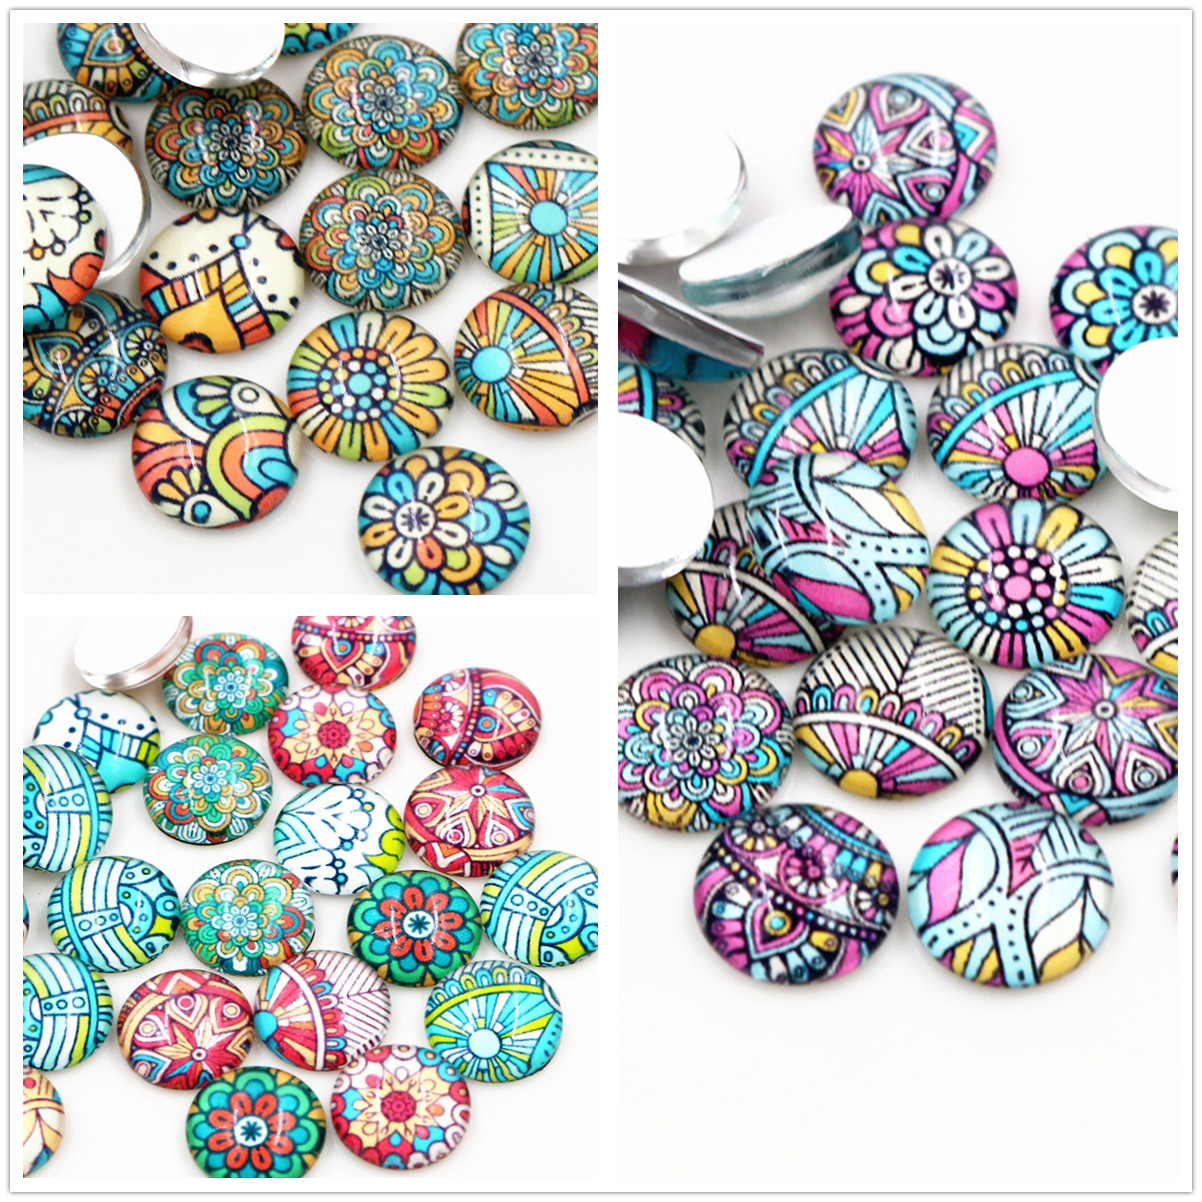 50pcs/Lot 12mm Colorful Pattern Photo Glass Cabochons Mixed Color Cabochons For Bracelet Earrings Necklace Bases Settings